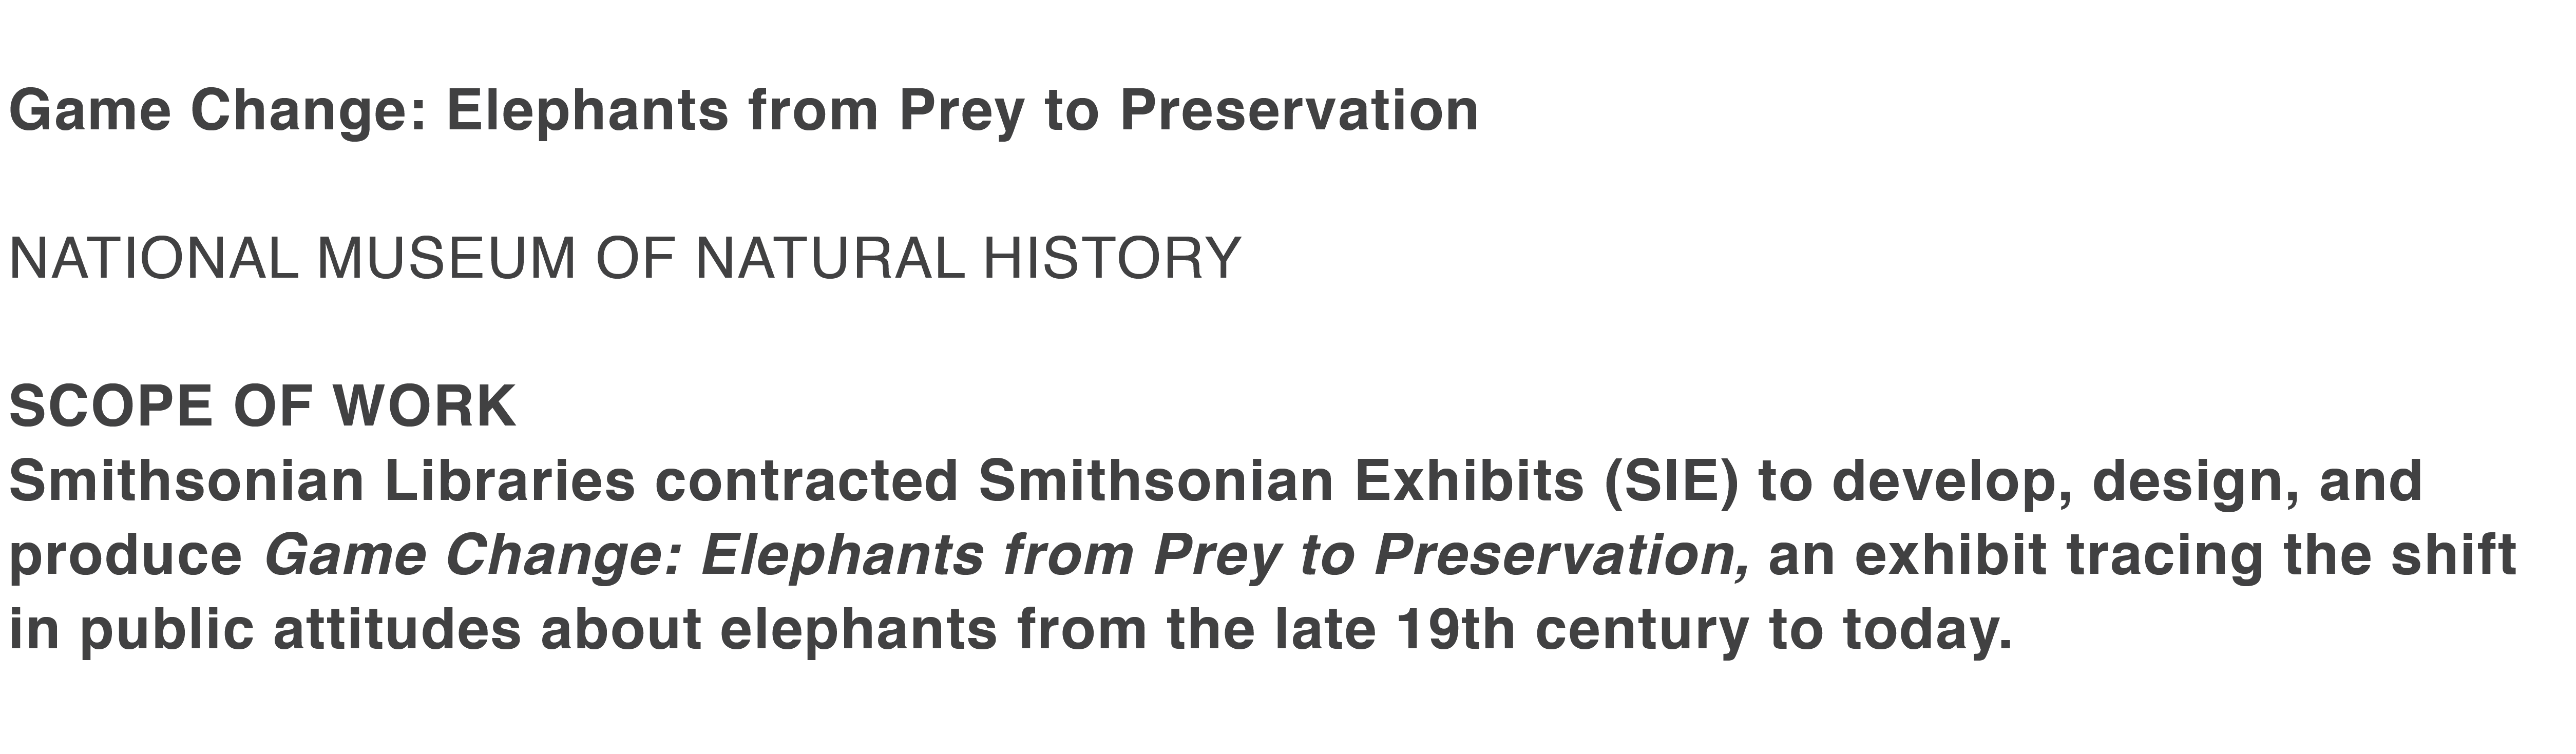 Game Change Elephants From Prey To Preservation Smithsonian Exhibits